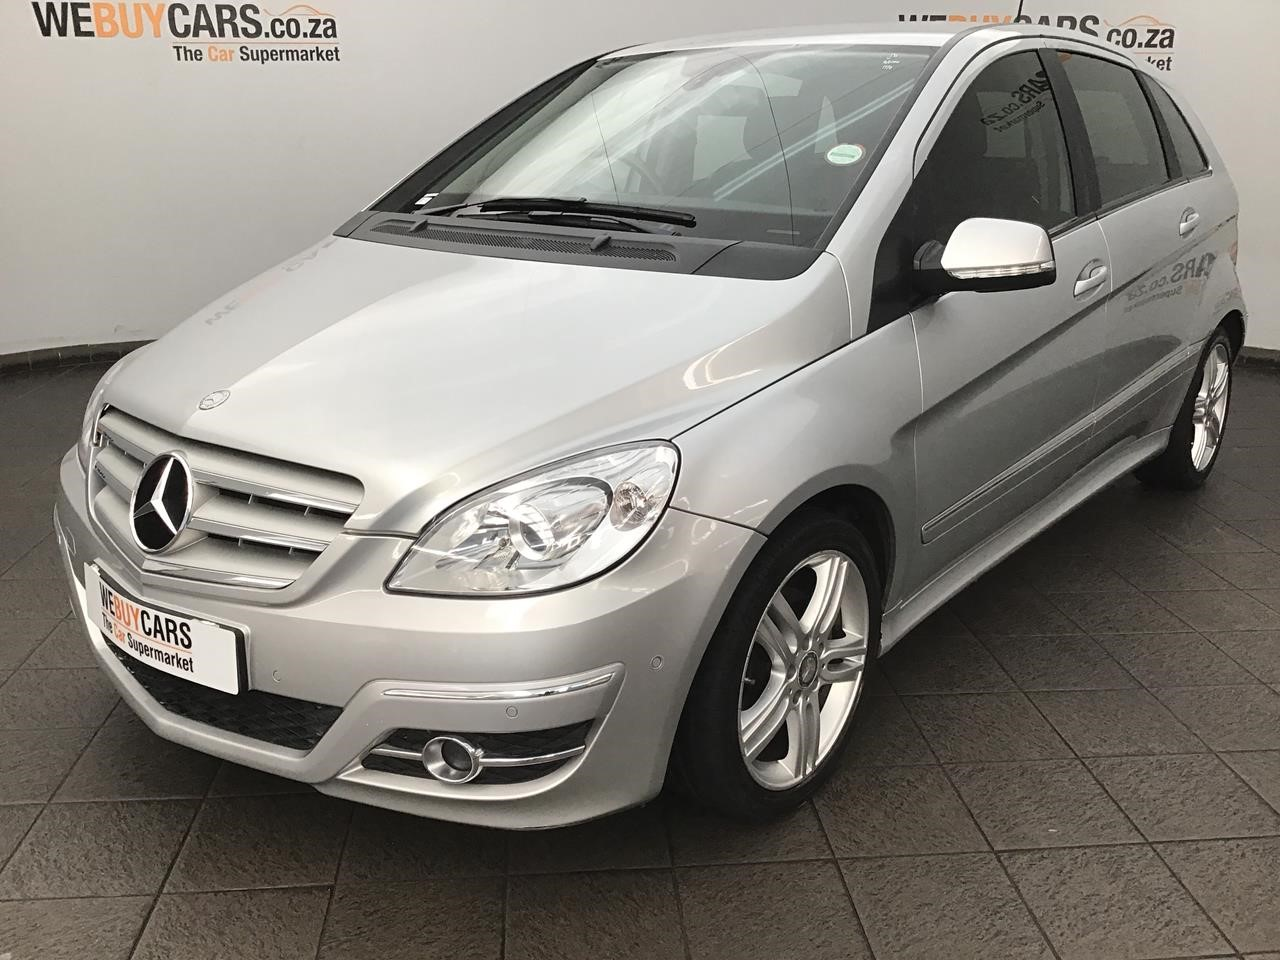 Used 2011 Mercedes Benz B Class B 200 Turbo Auto For Sale Webuycars